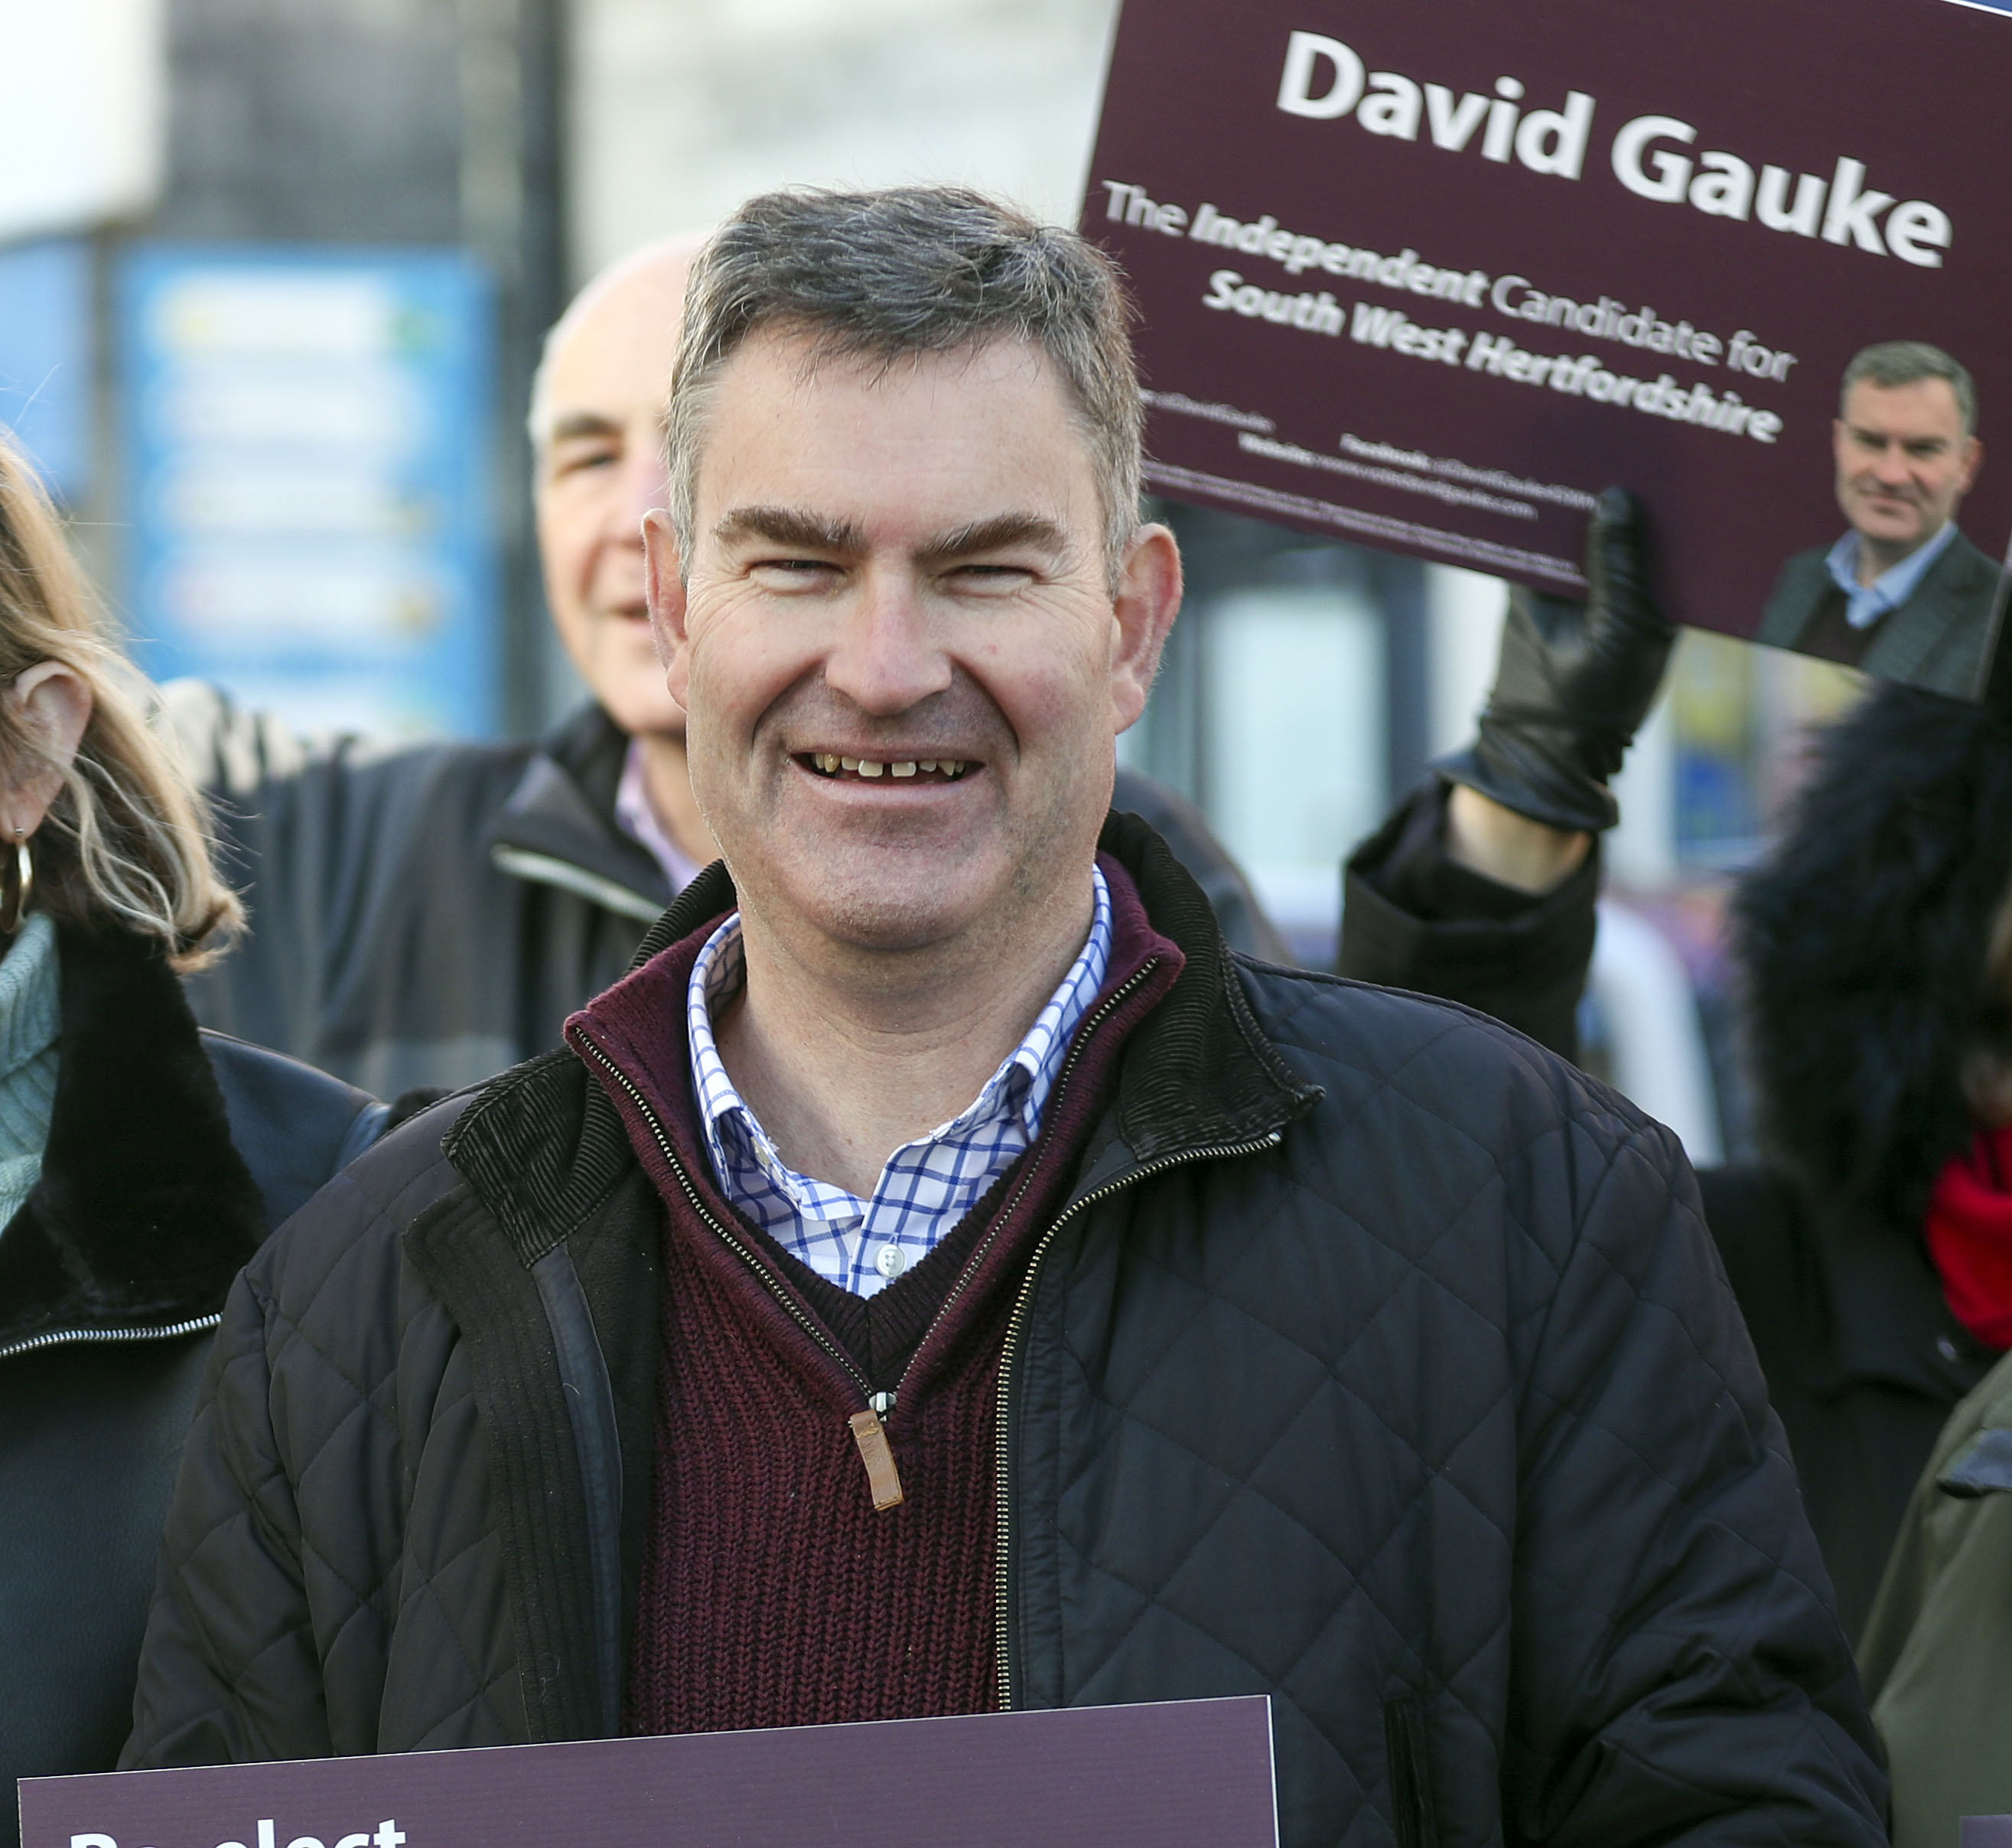 Independent MP David Gauke in Rickmansworth, Hertfordshire whilst on the General Election campaign trail.